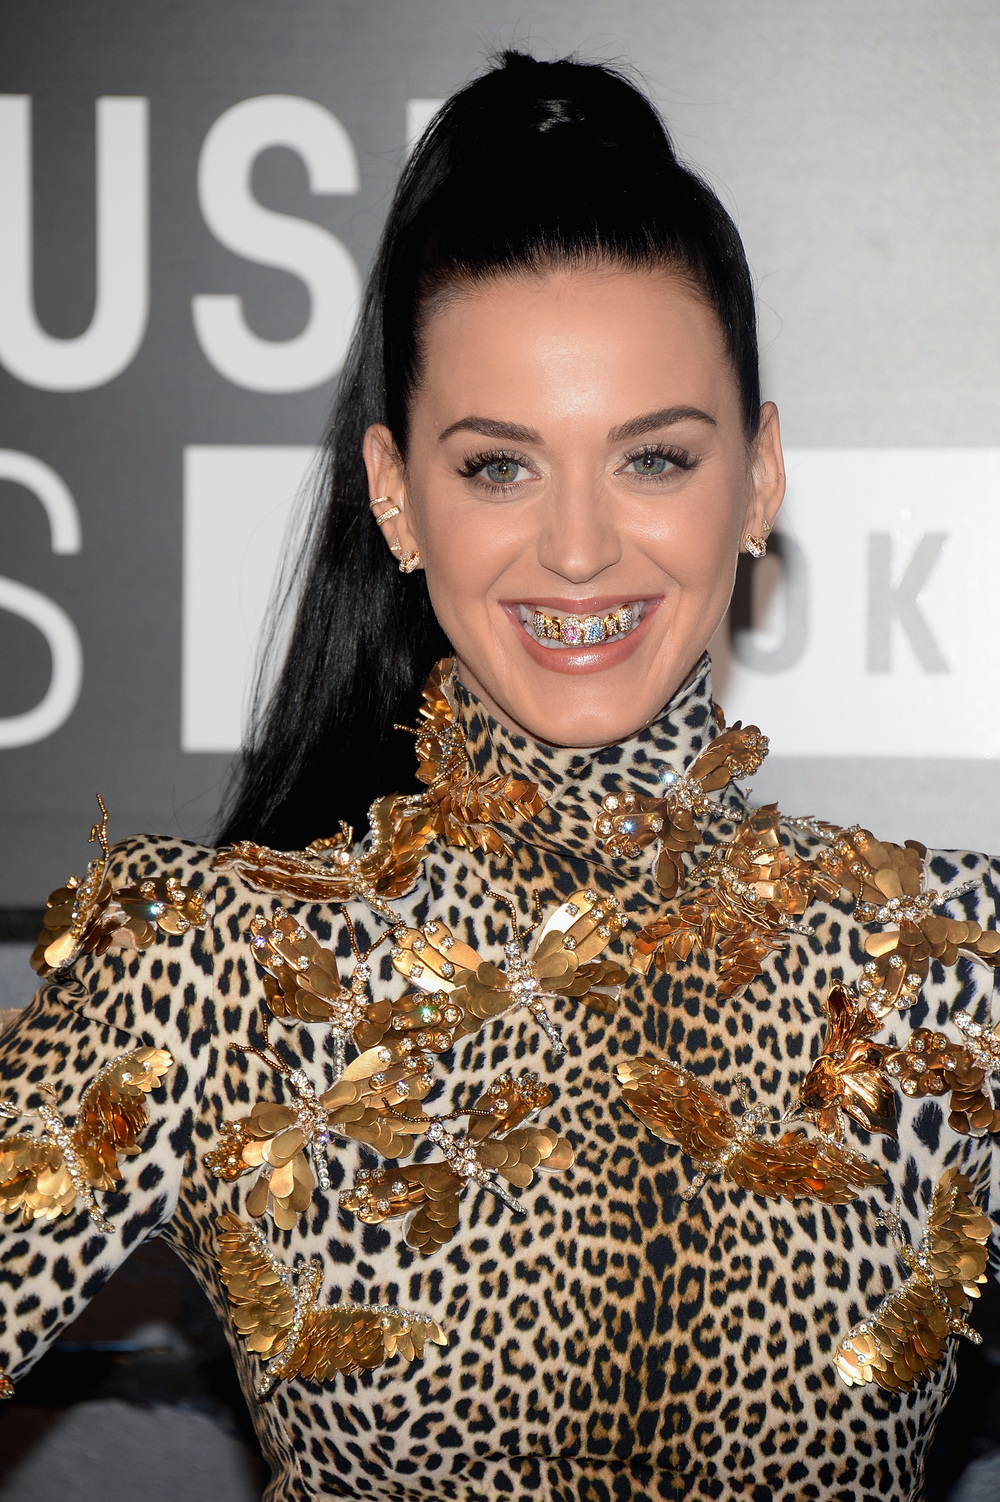 katy perry iced out grill 2013 mtv vma